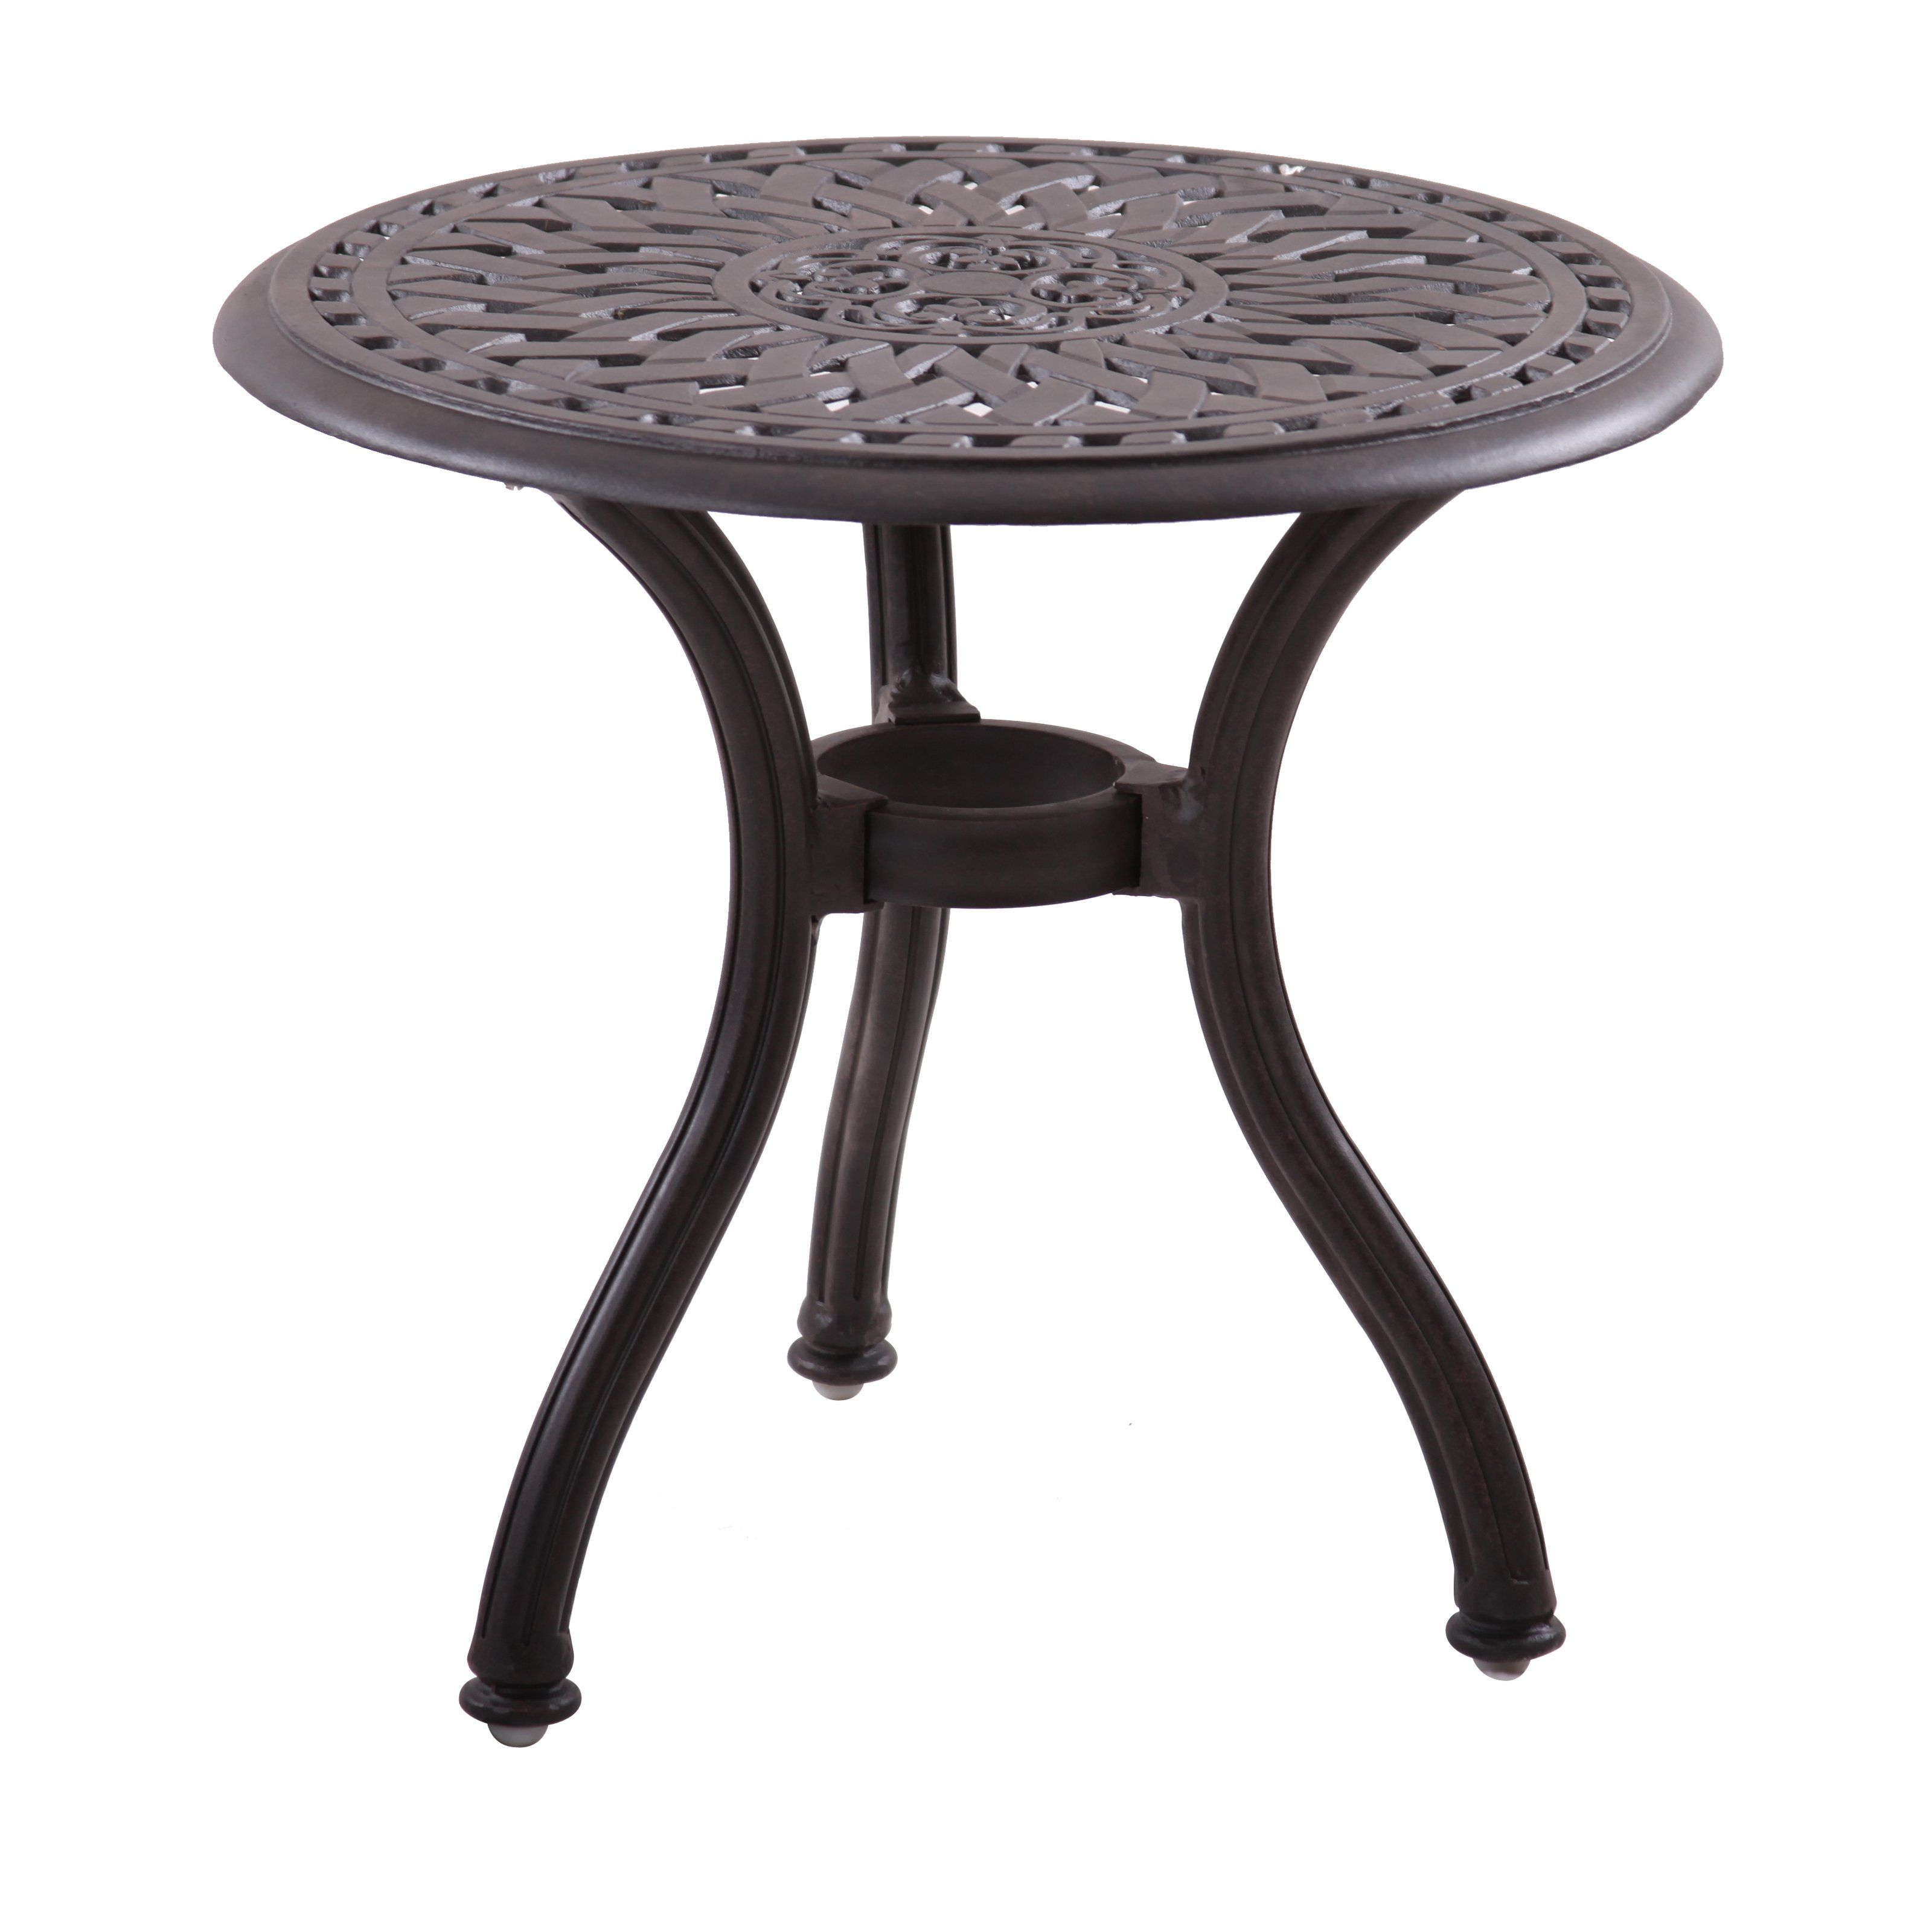 Darlee Series 60 Cast Aluminum Round End Table From Hayneedle